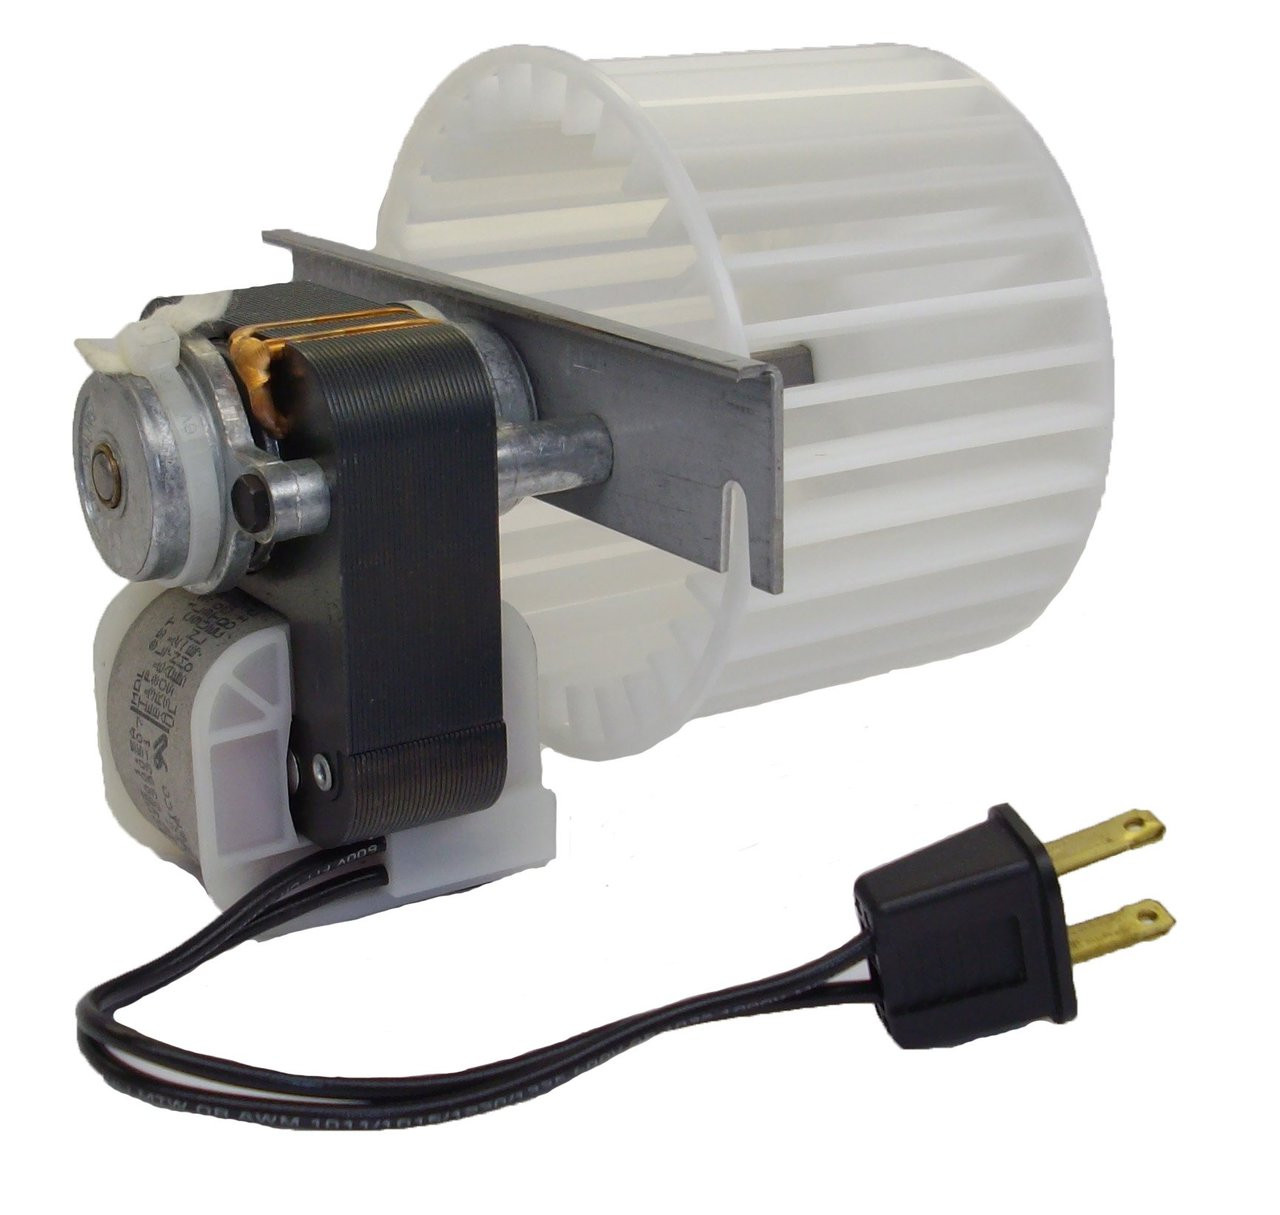 97005906__09780.1435075858.1280.1280?c=2 broan 162 a, 162 b vent fan motor 2650 rpm, 1 5 amp, 120v 97005906 nutone 665rp wiring diagram at gsmx.co